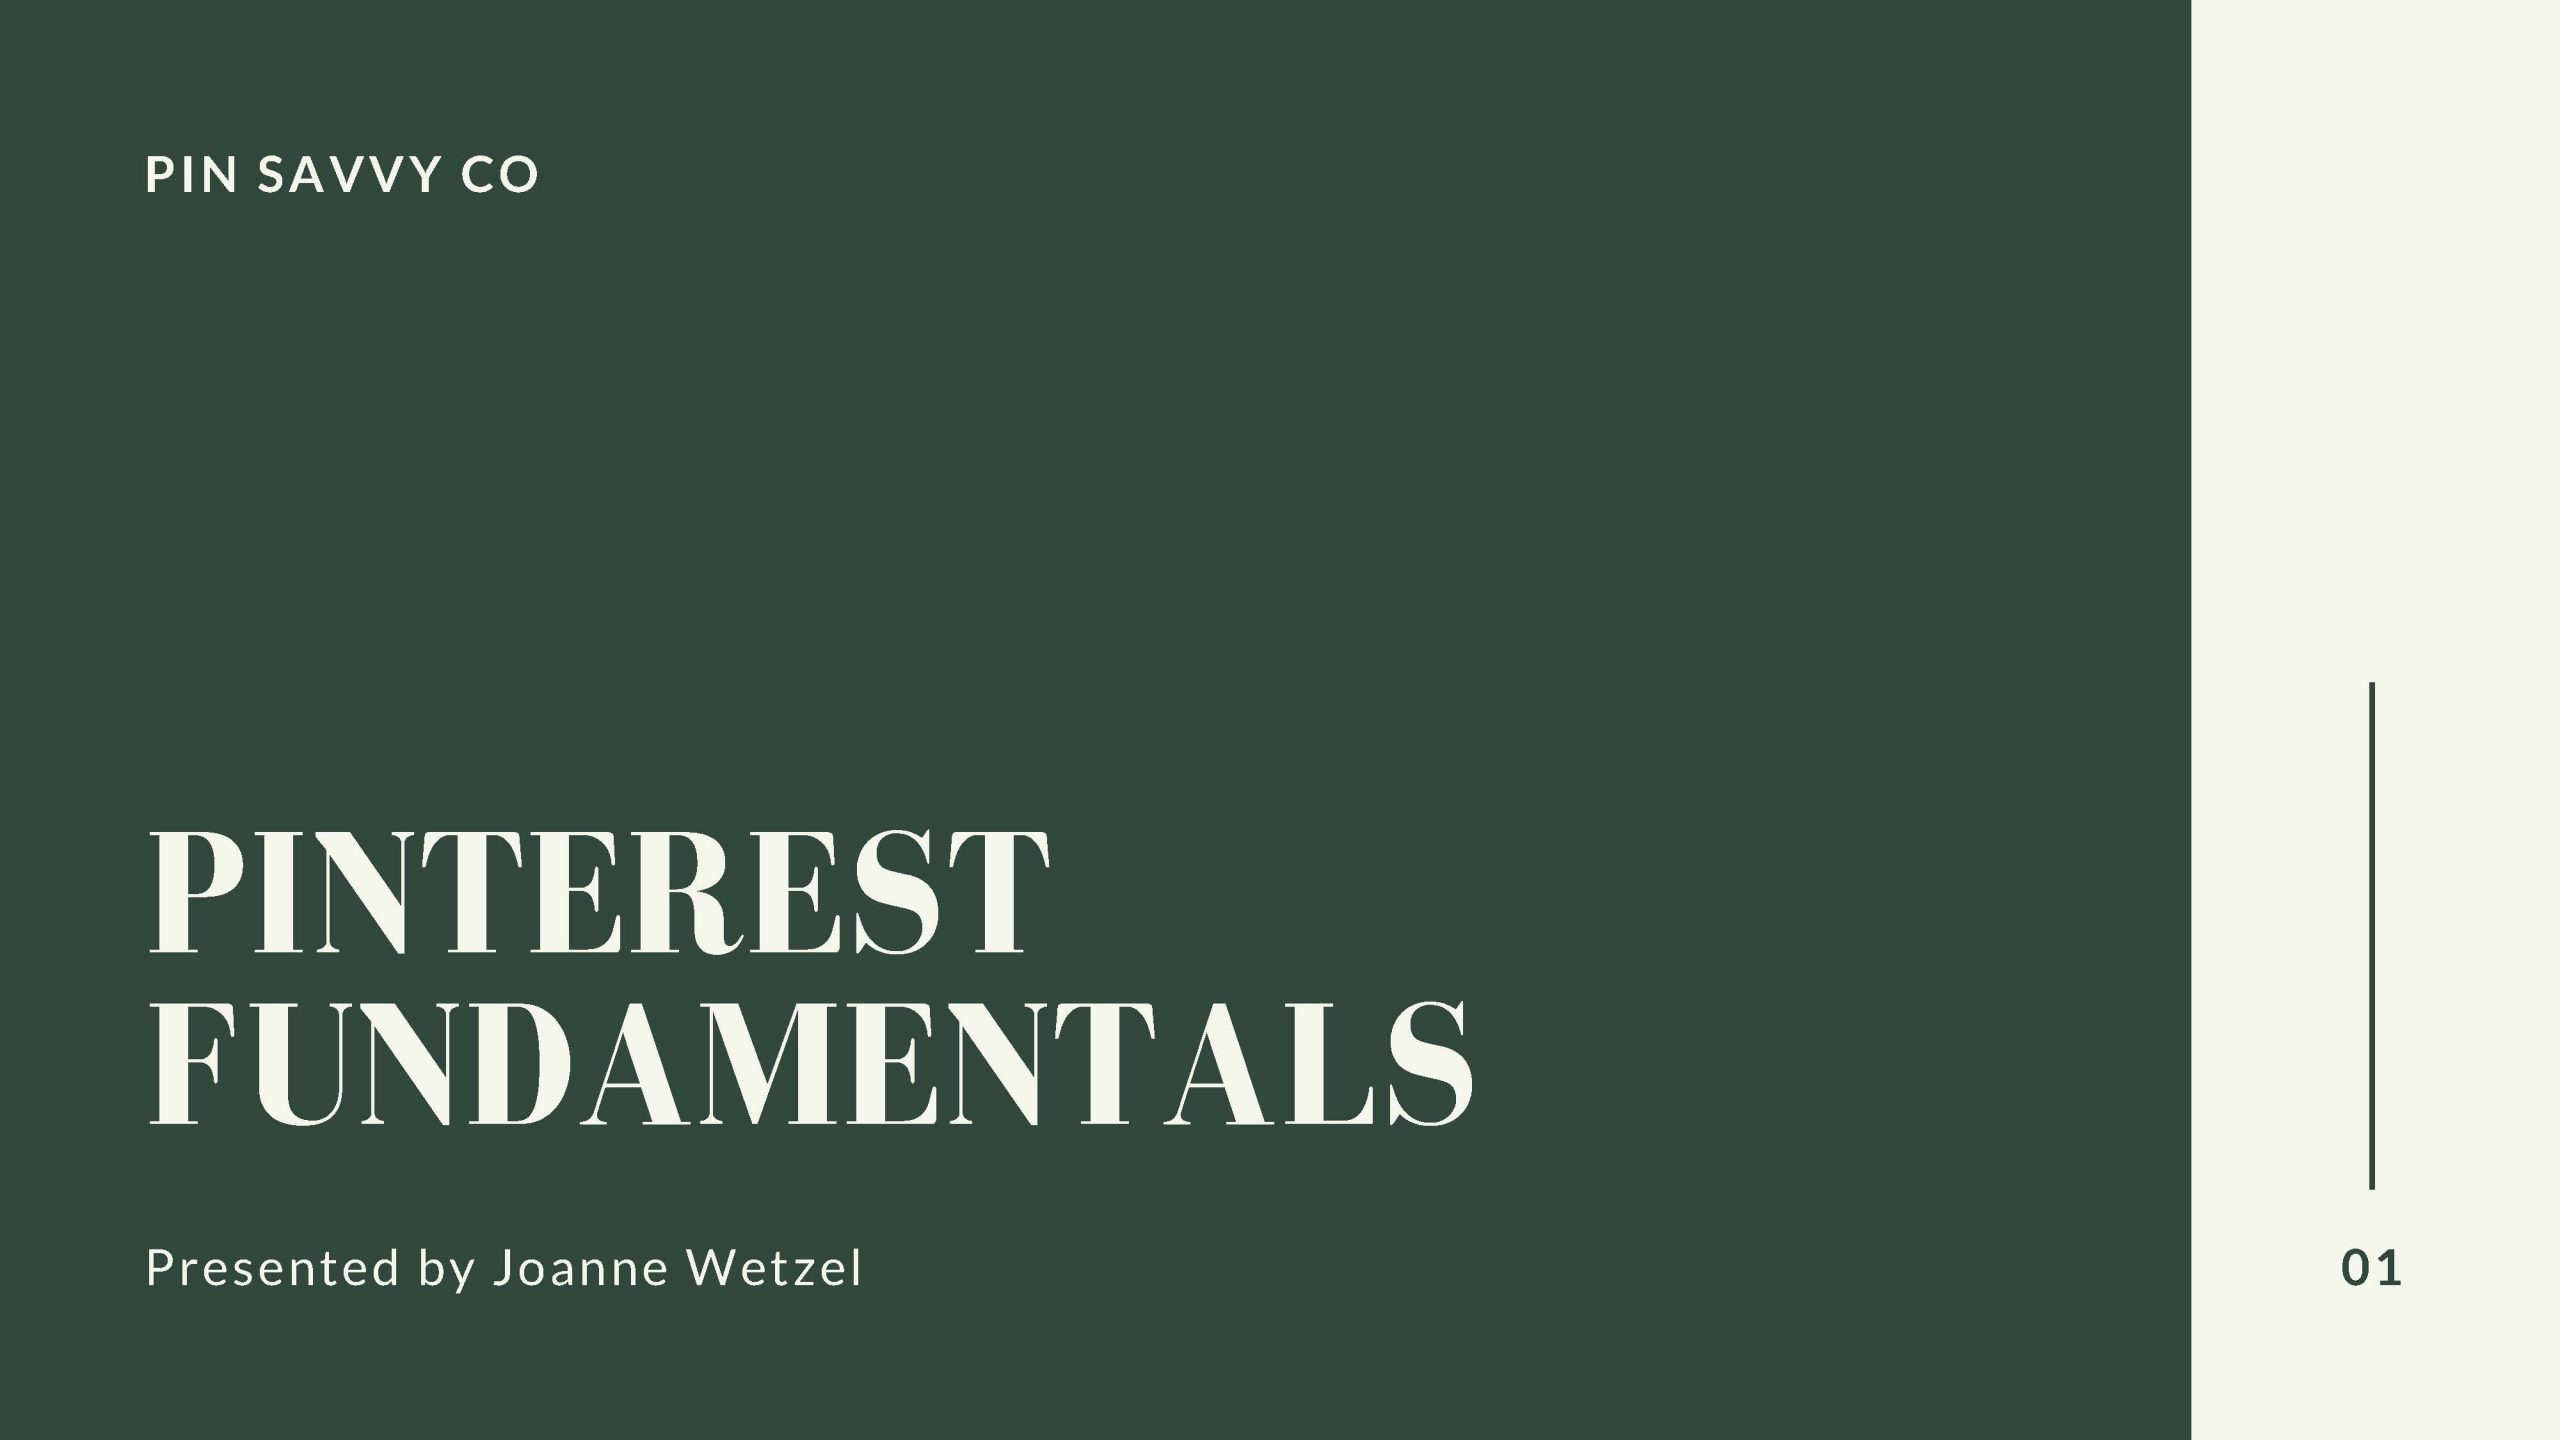 Pinterest Fundamentals